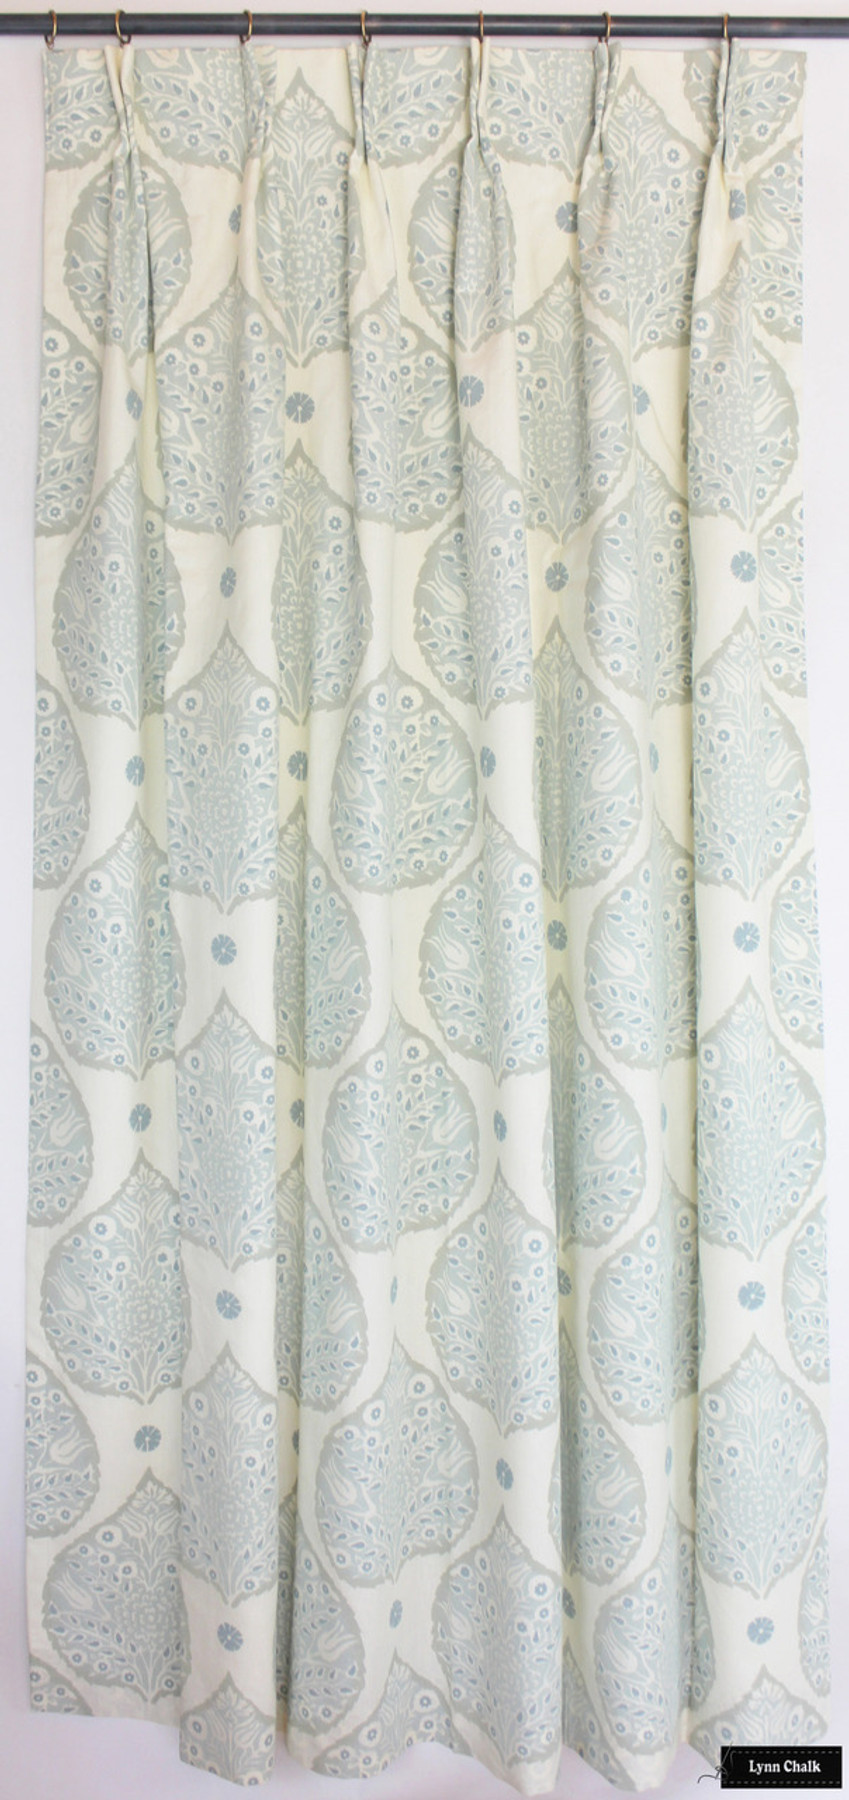 ... Galbraith & Paul Lotus Wallpaper - Shown in Indigo (Wallpaper Sold By The Yard ...